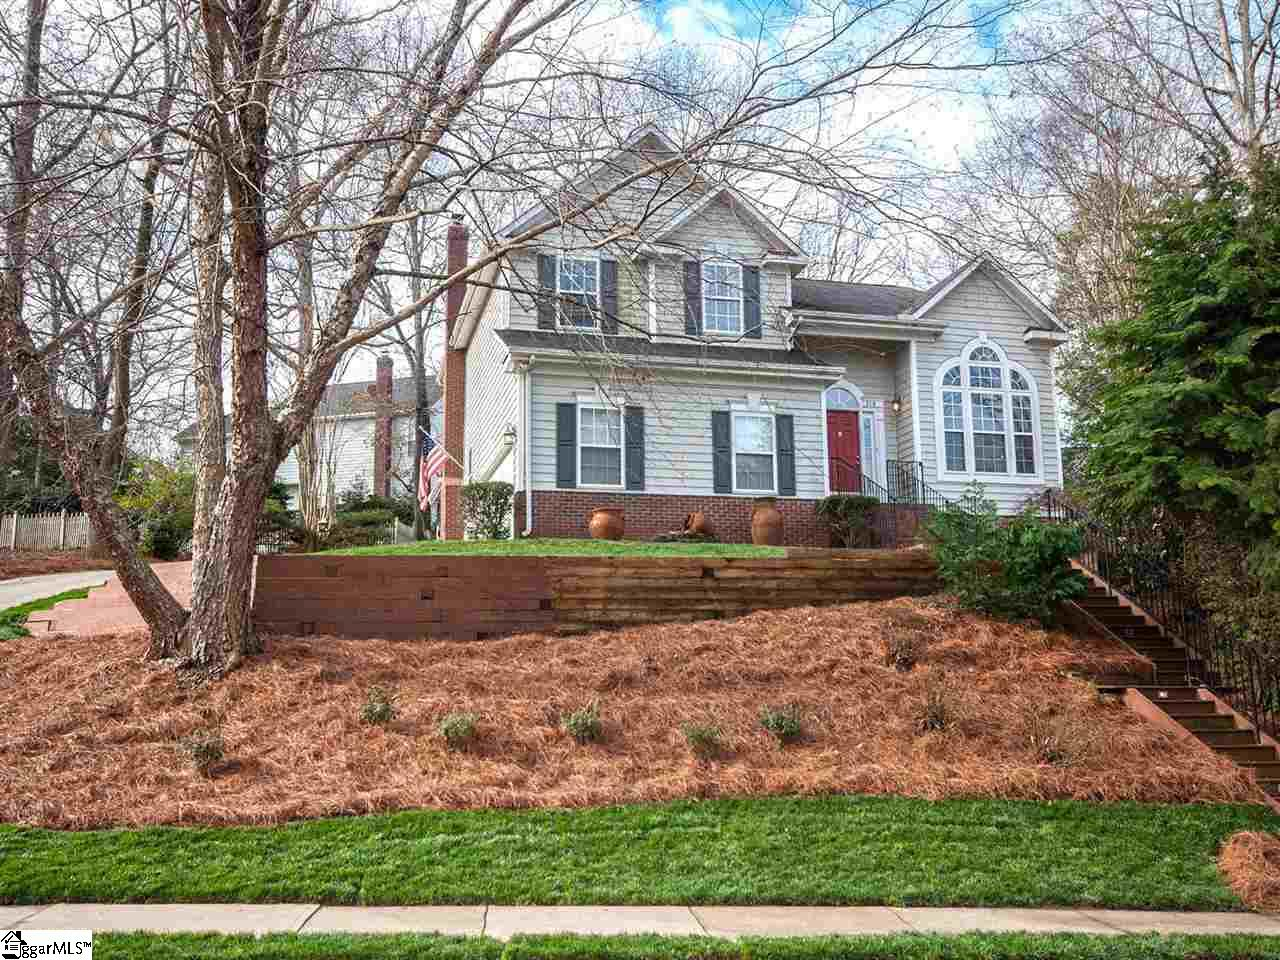 219 Windsong, Greenville, South Carolina